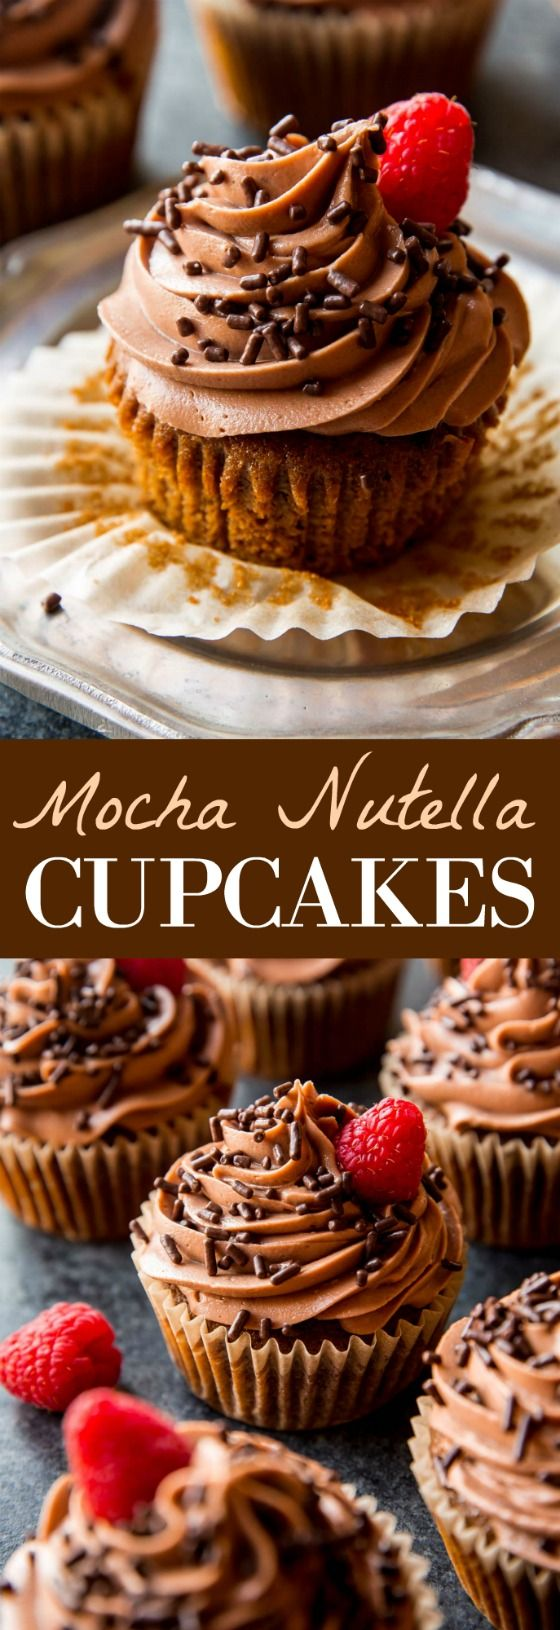 Quick Nutella Icing Recipe Best 25 Nutella Frosting Ideas On Pinterest Nutella Icing